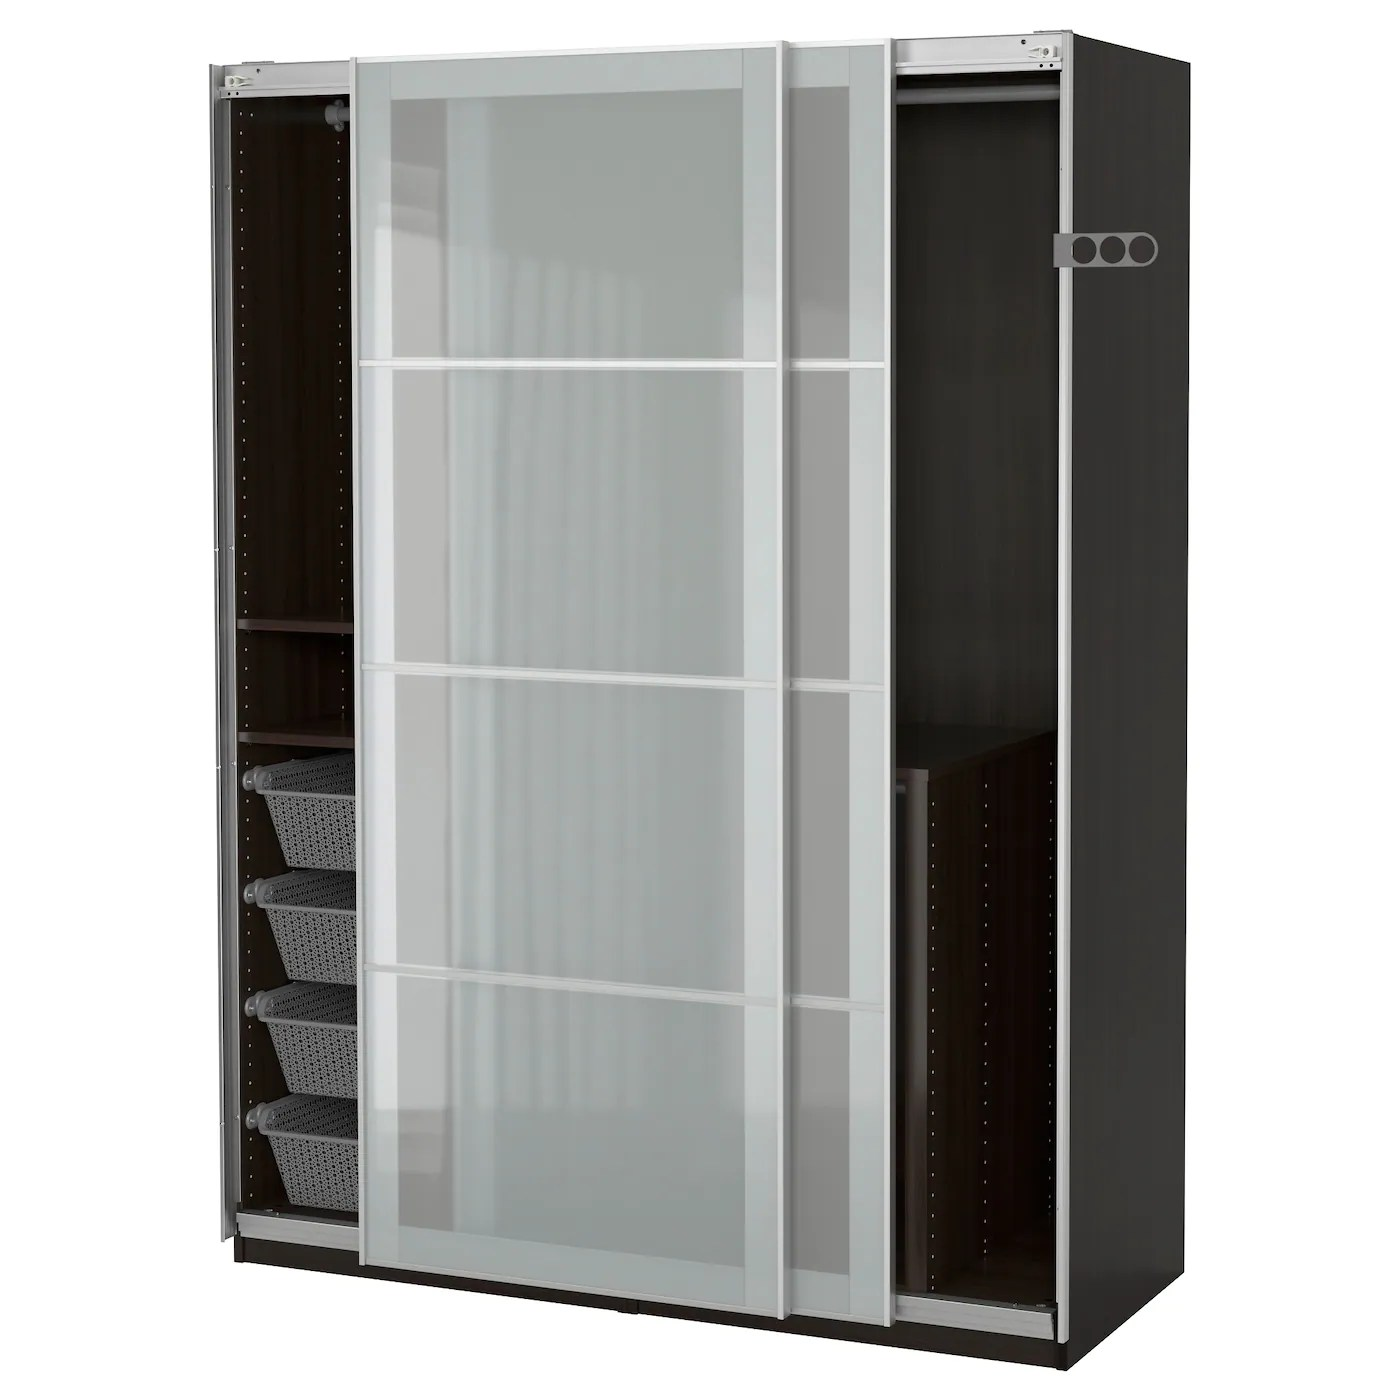 Pax Sekken Pax Wardrobe Black Brown Sekken Frosted Glass 150x66x201